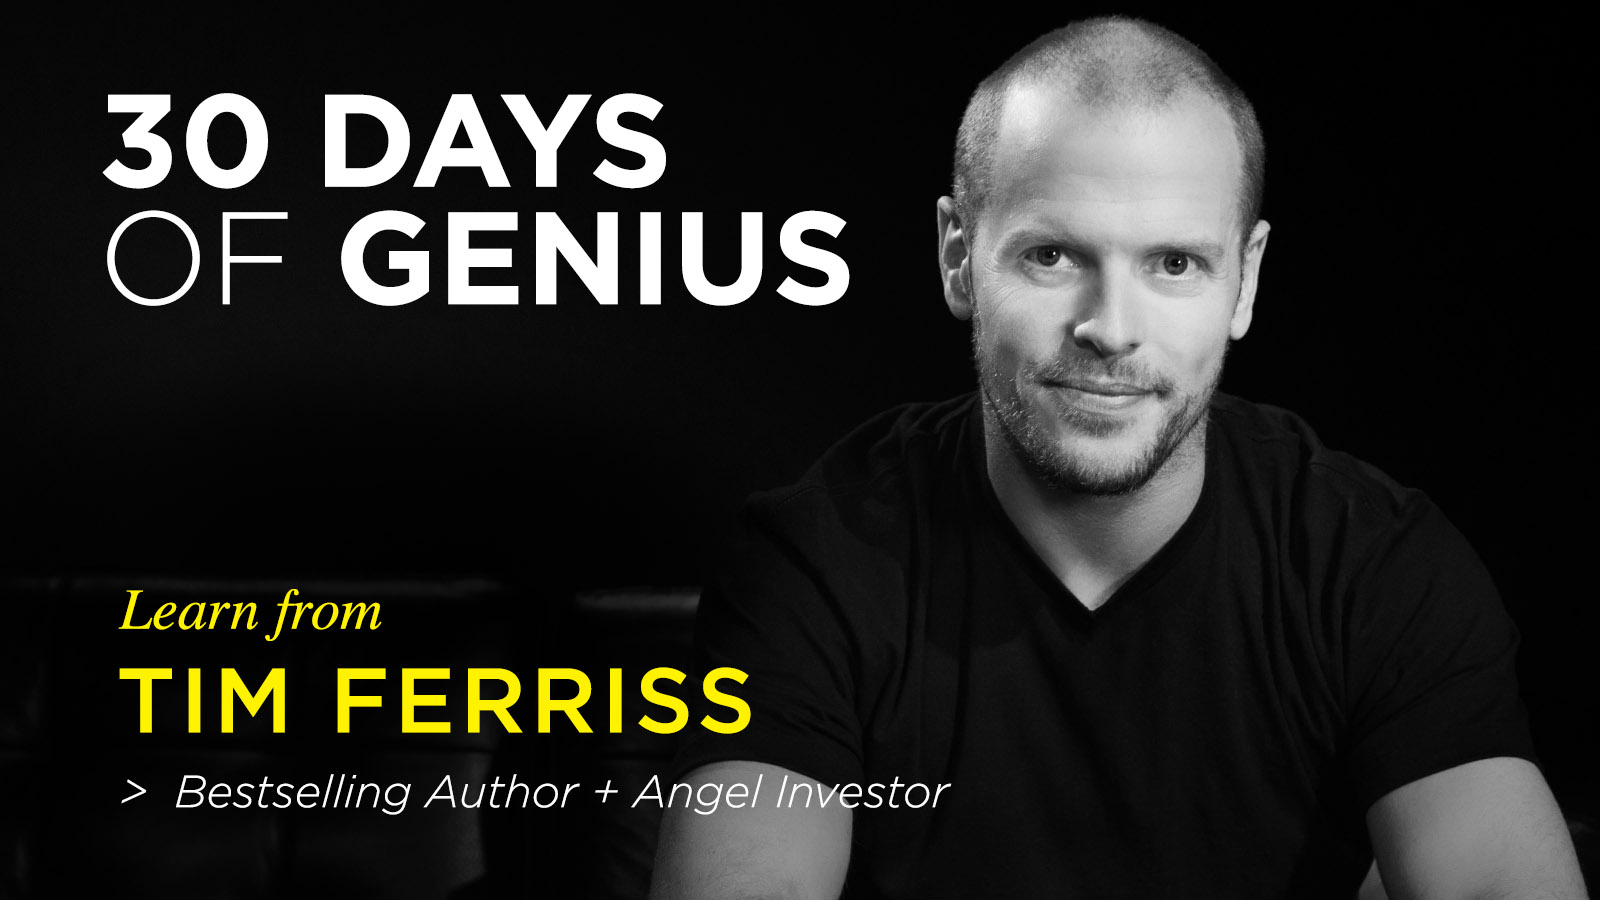 Tim_Ferriss_30days_Guest_1600x900